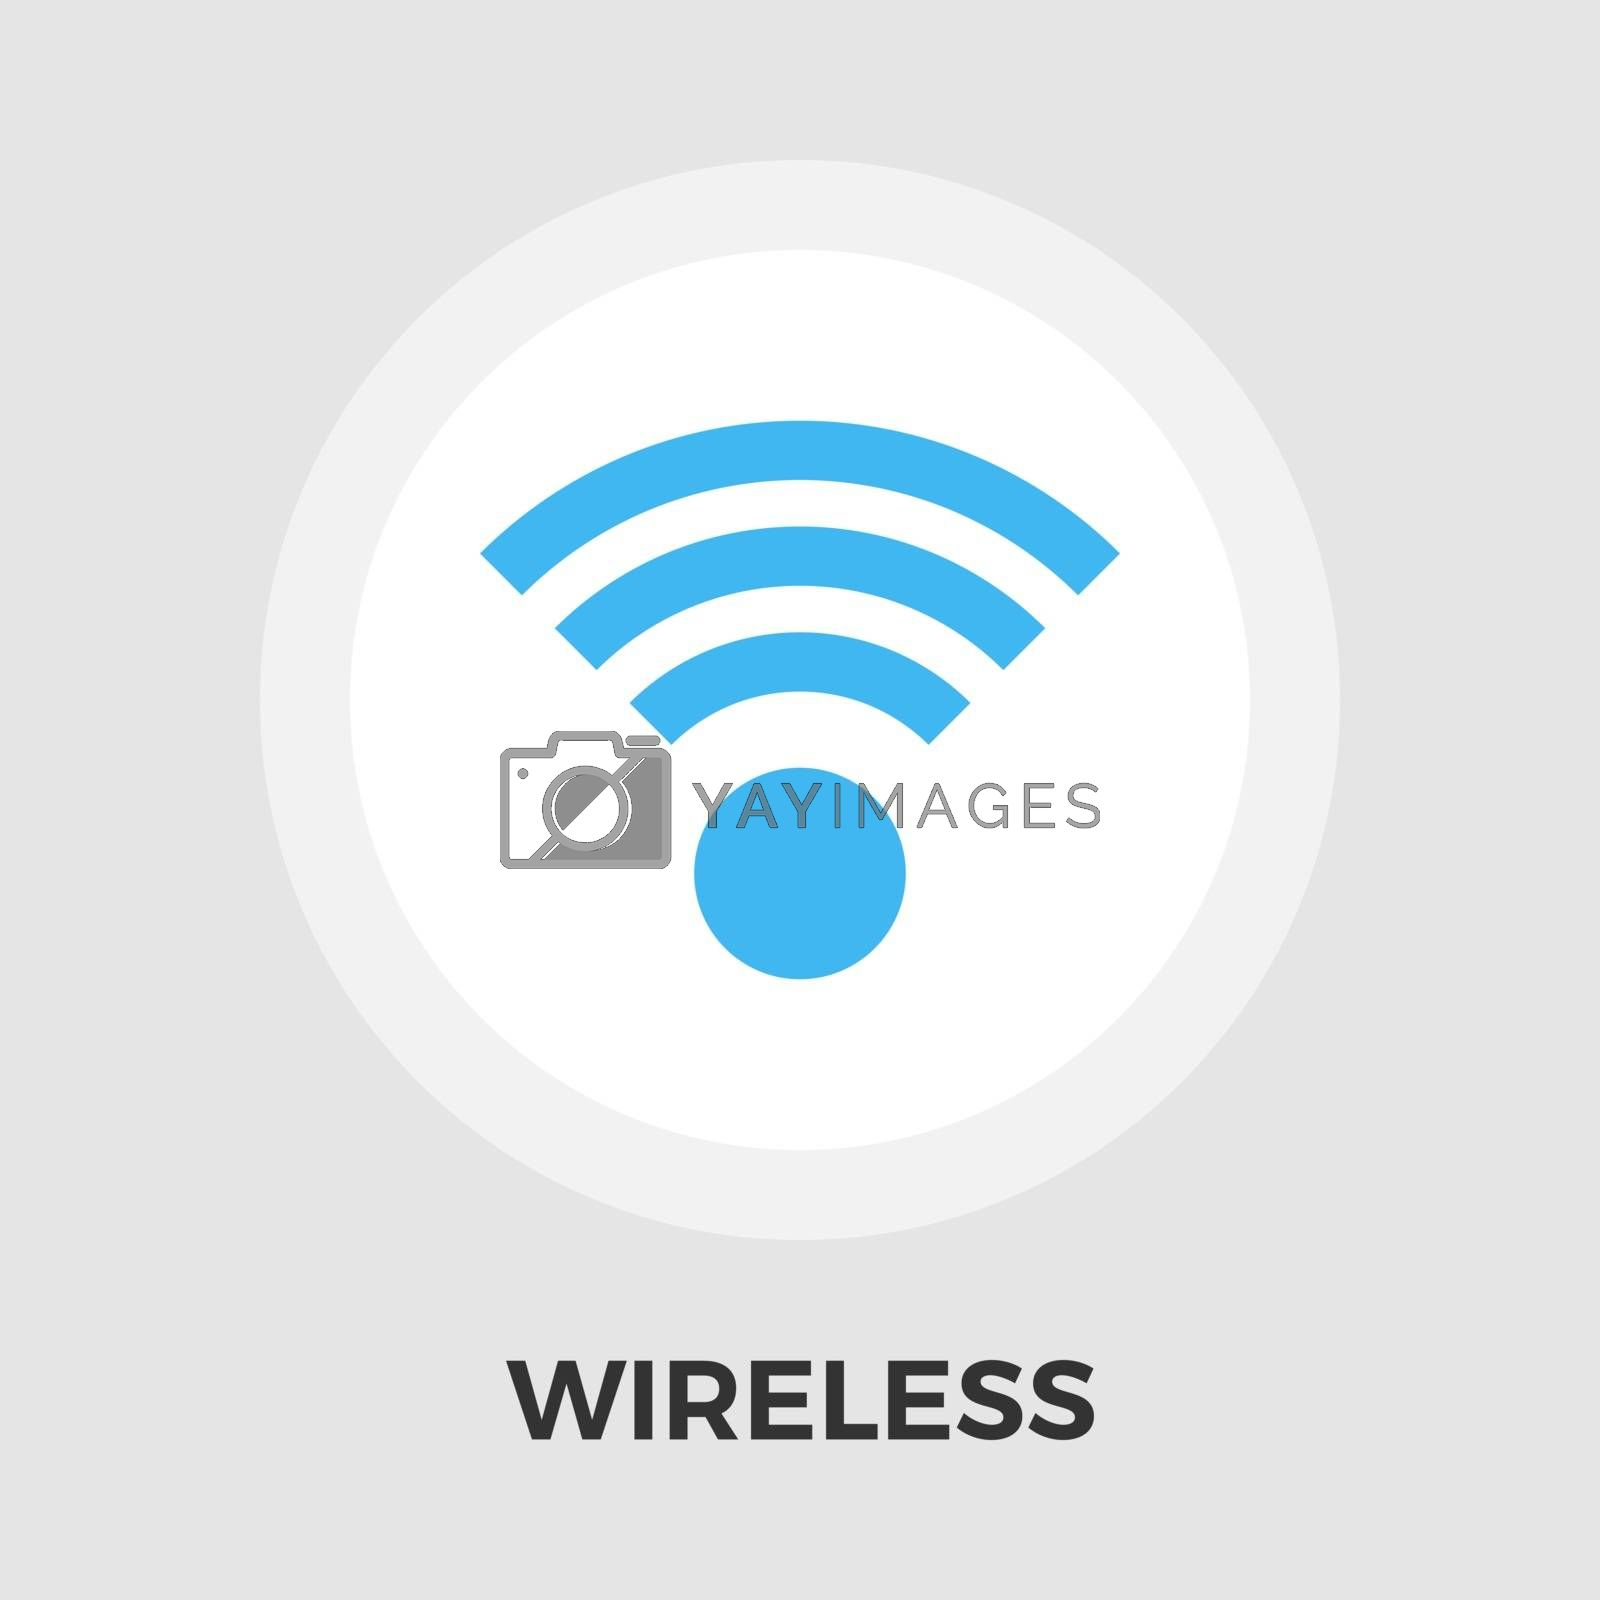 Wireless icon vector. Flat icon isolated on the white background. Editable EPS file. Vector illustration.